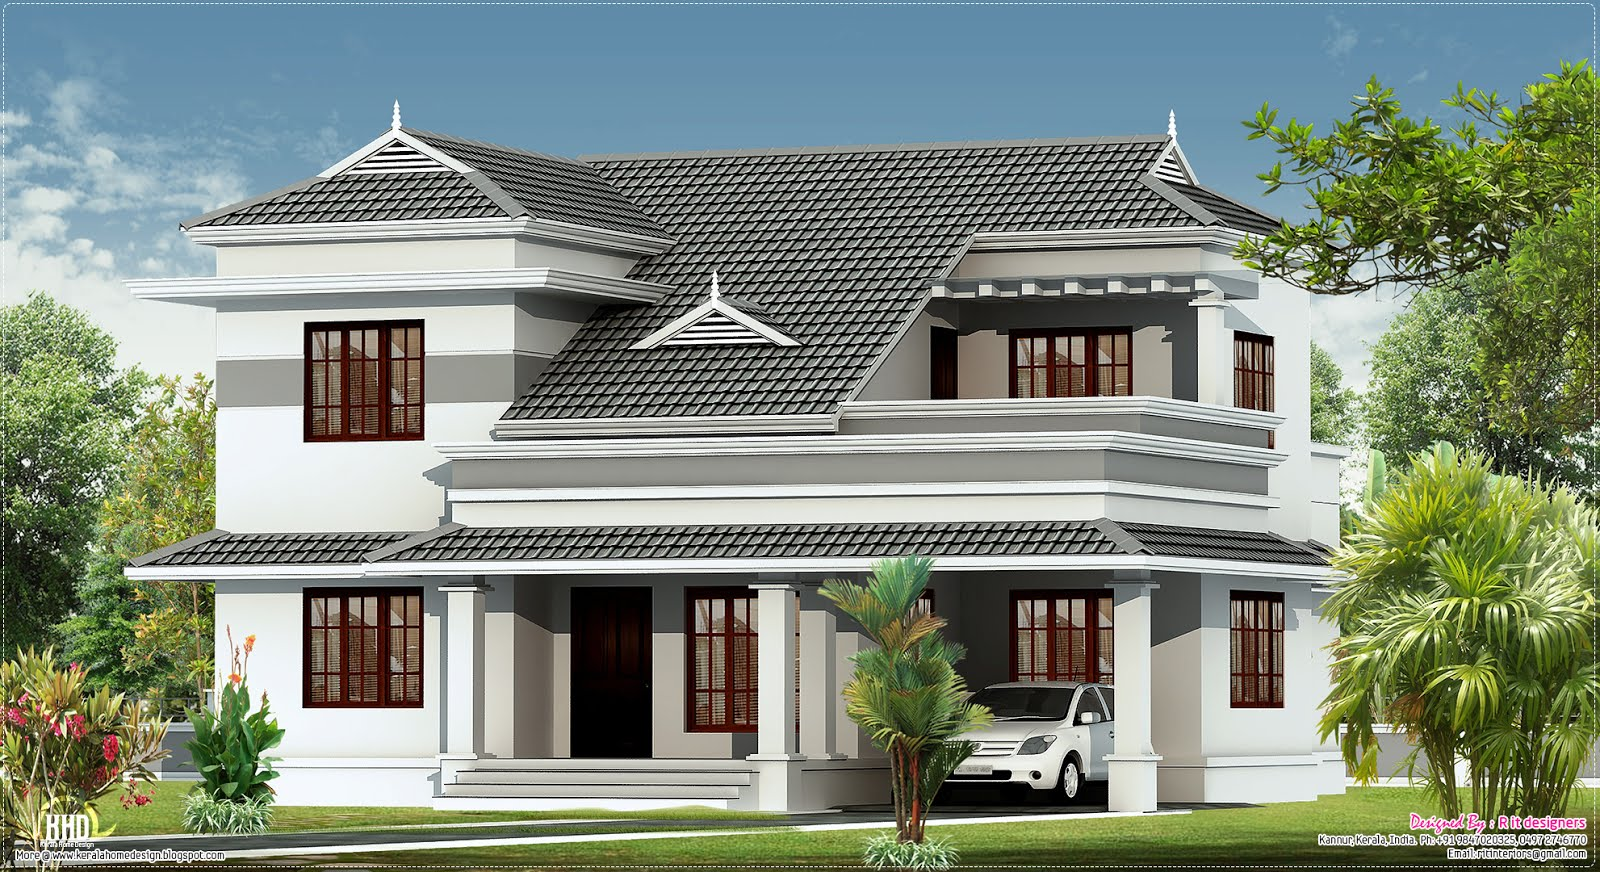 New villa design in 2250 kerala home design and for New latest house design